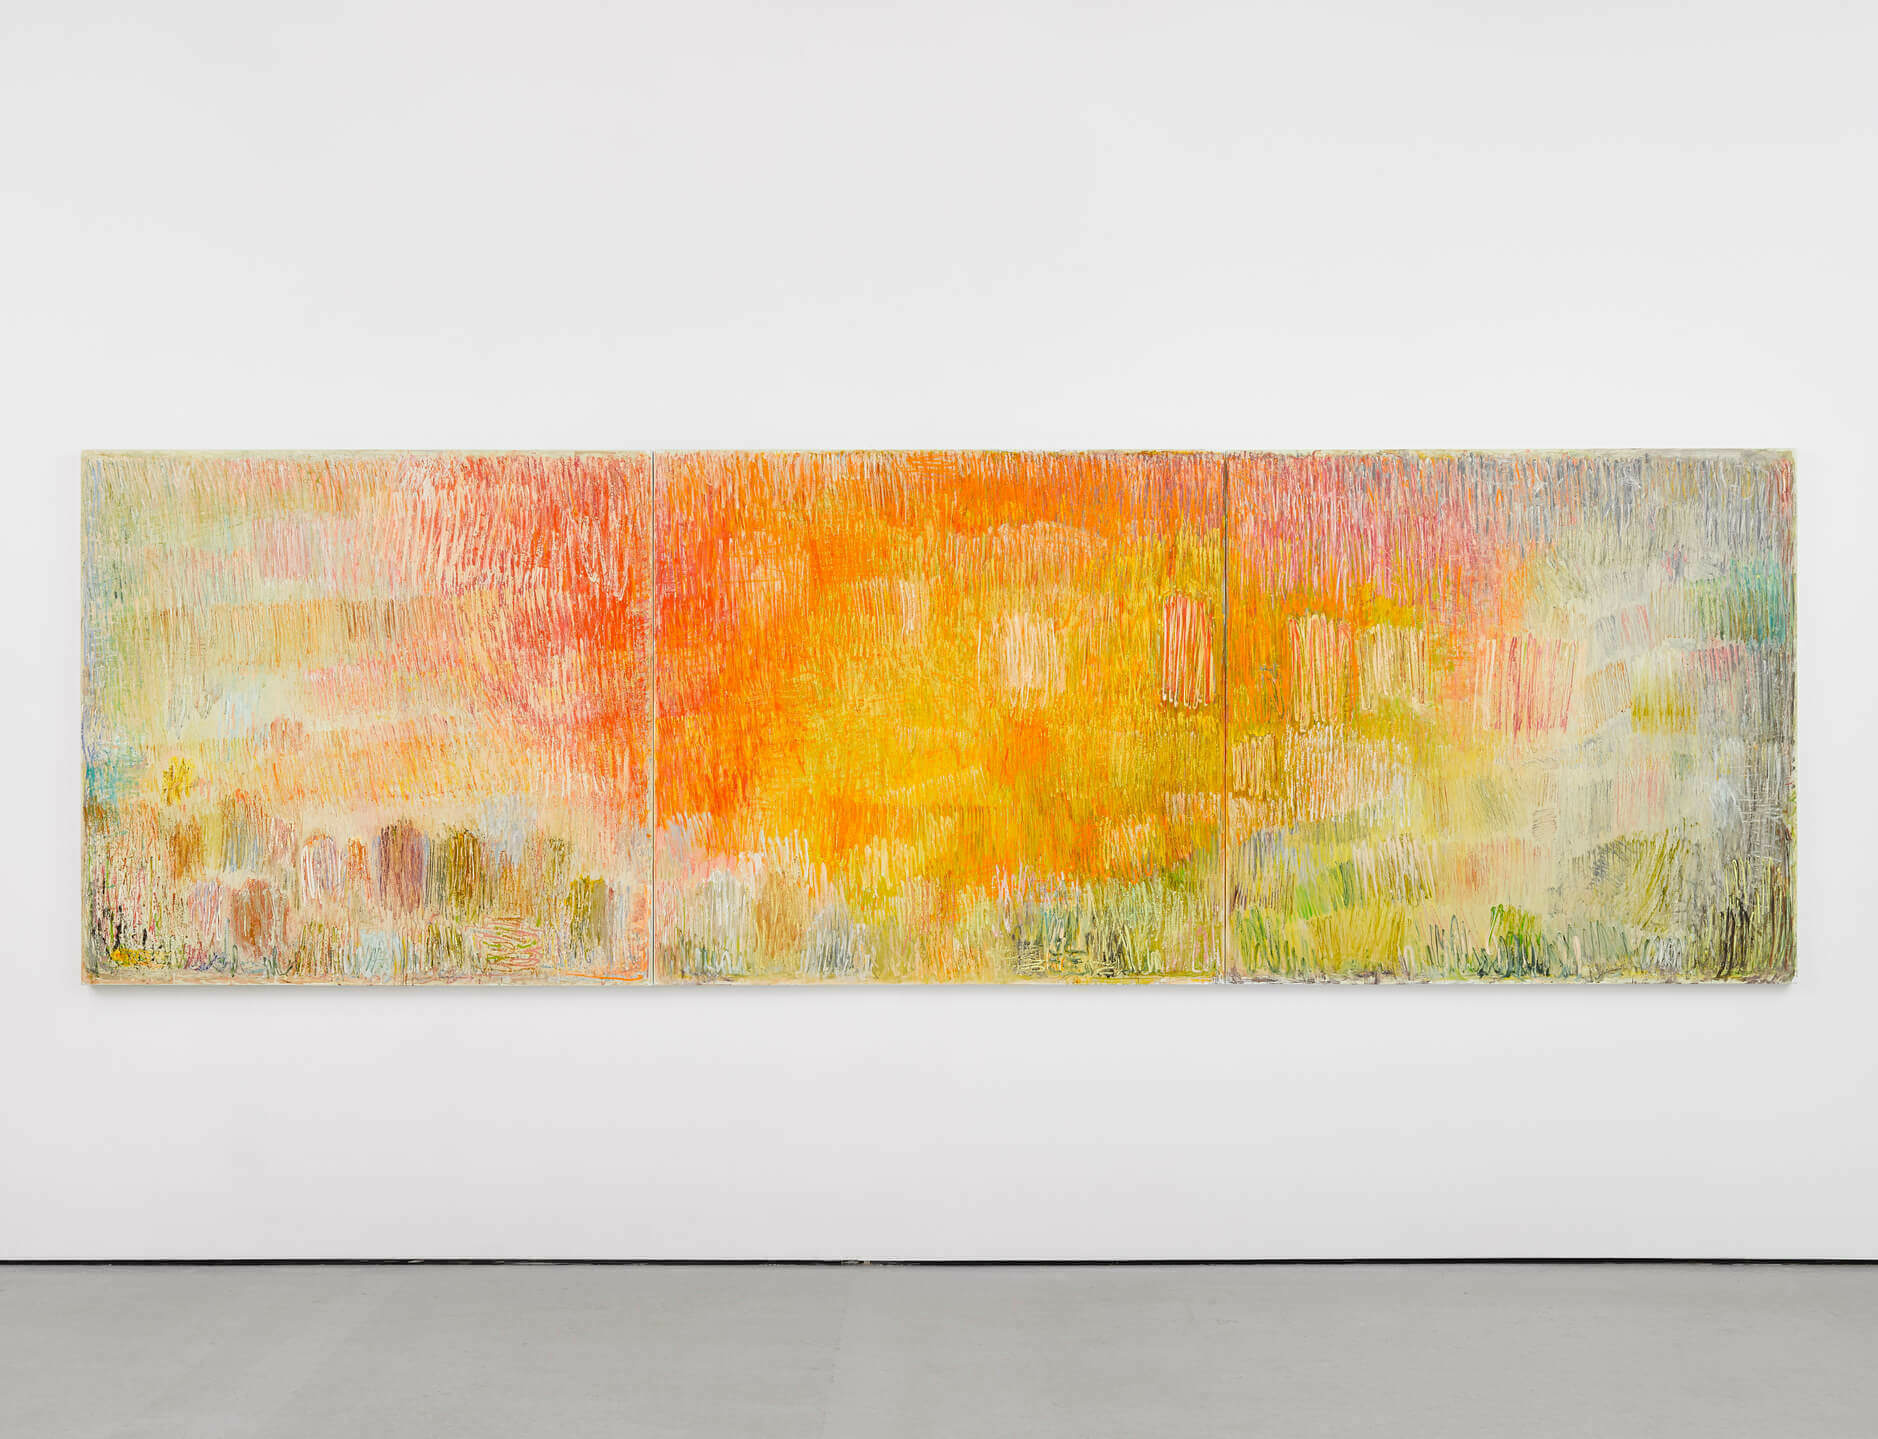 Work by Lisson Gallery artists presented in Royal Academy Summer Exhibition